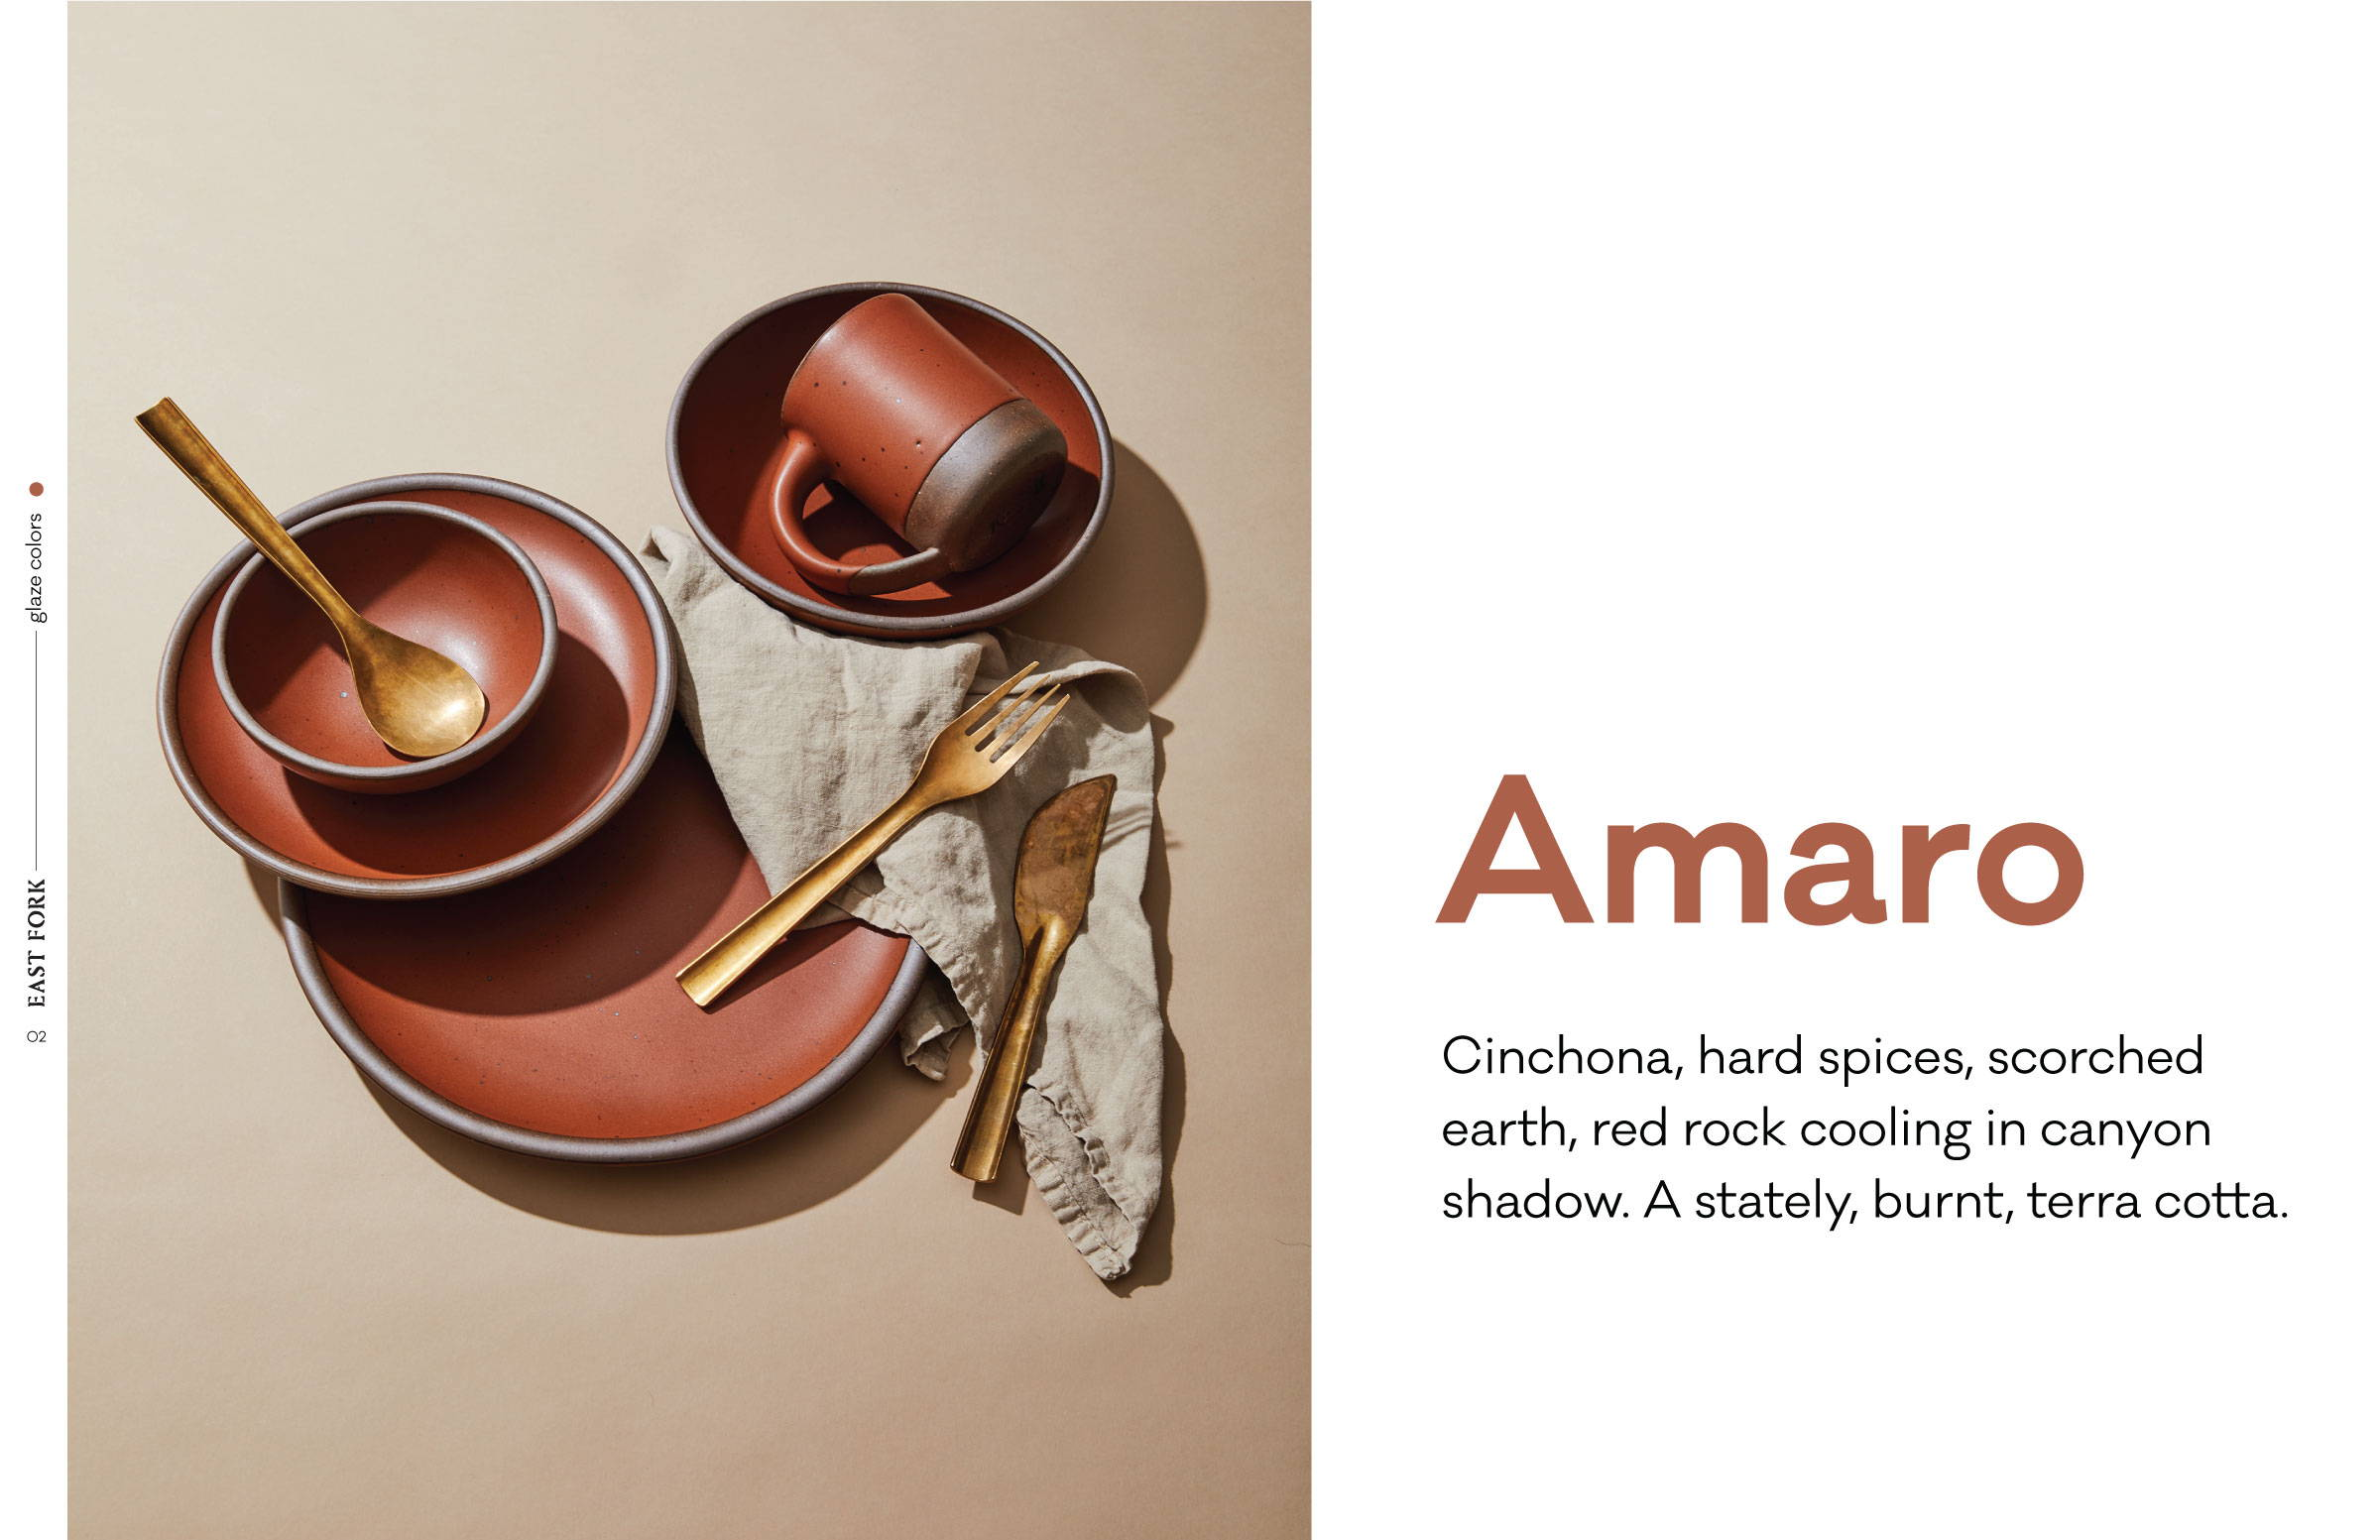 Amaro. Our stately, burnt terracotta